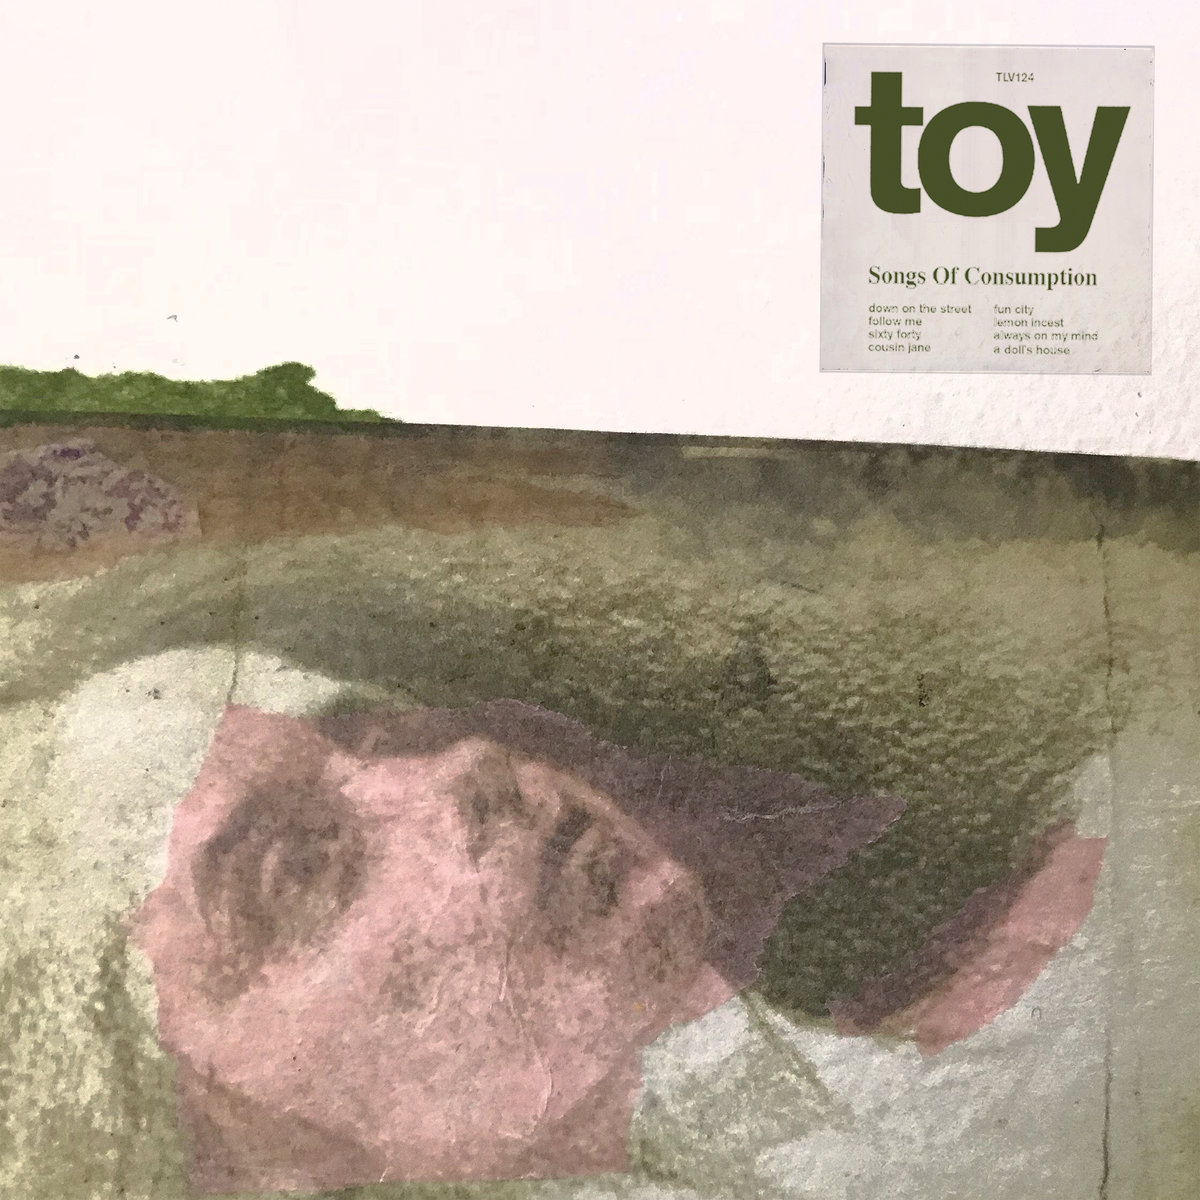 TOY Songs of Consumption